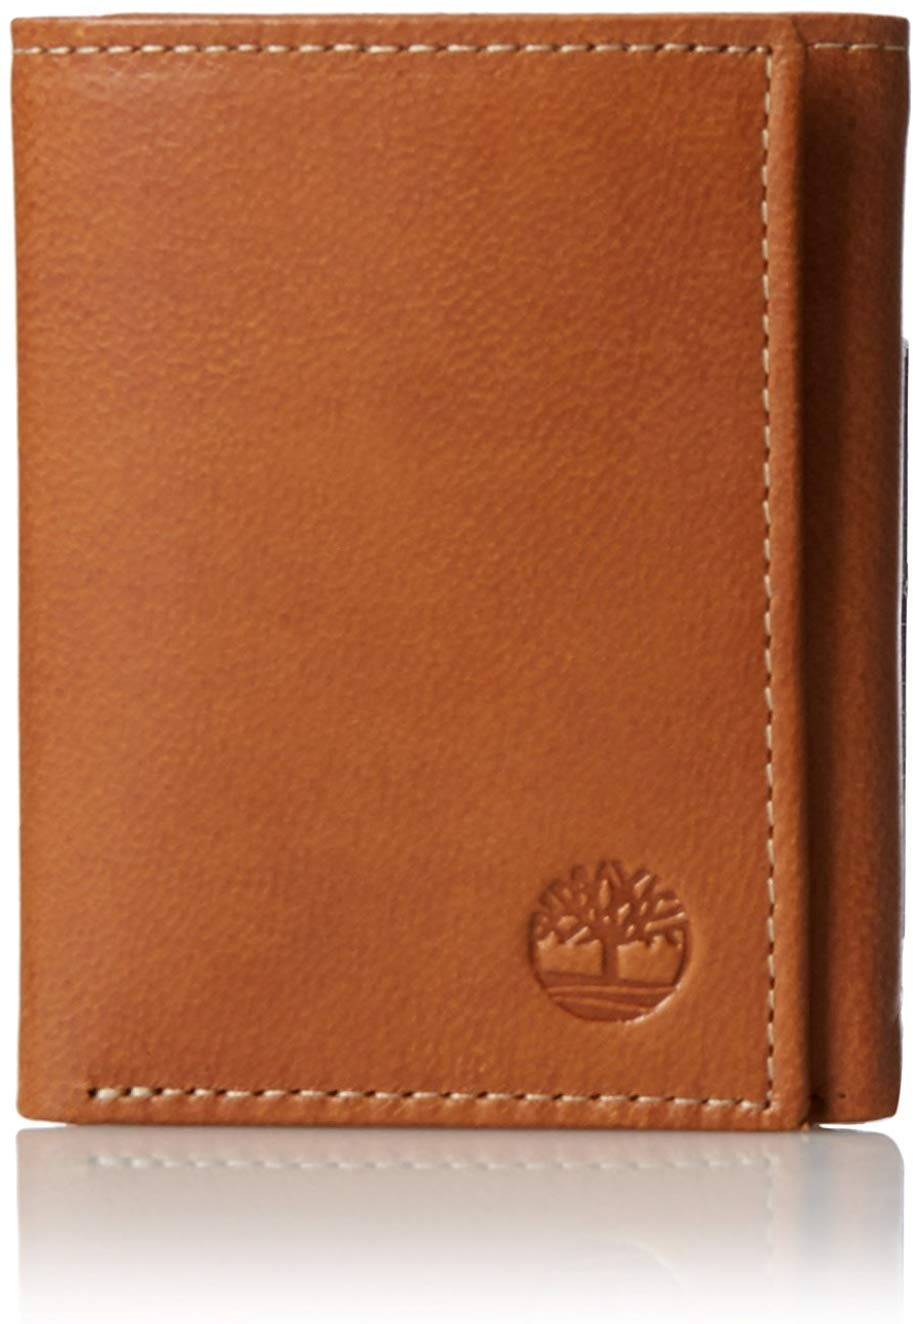 Timberland Leather Trifold Wallet Window